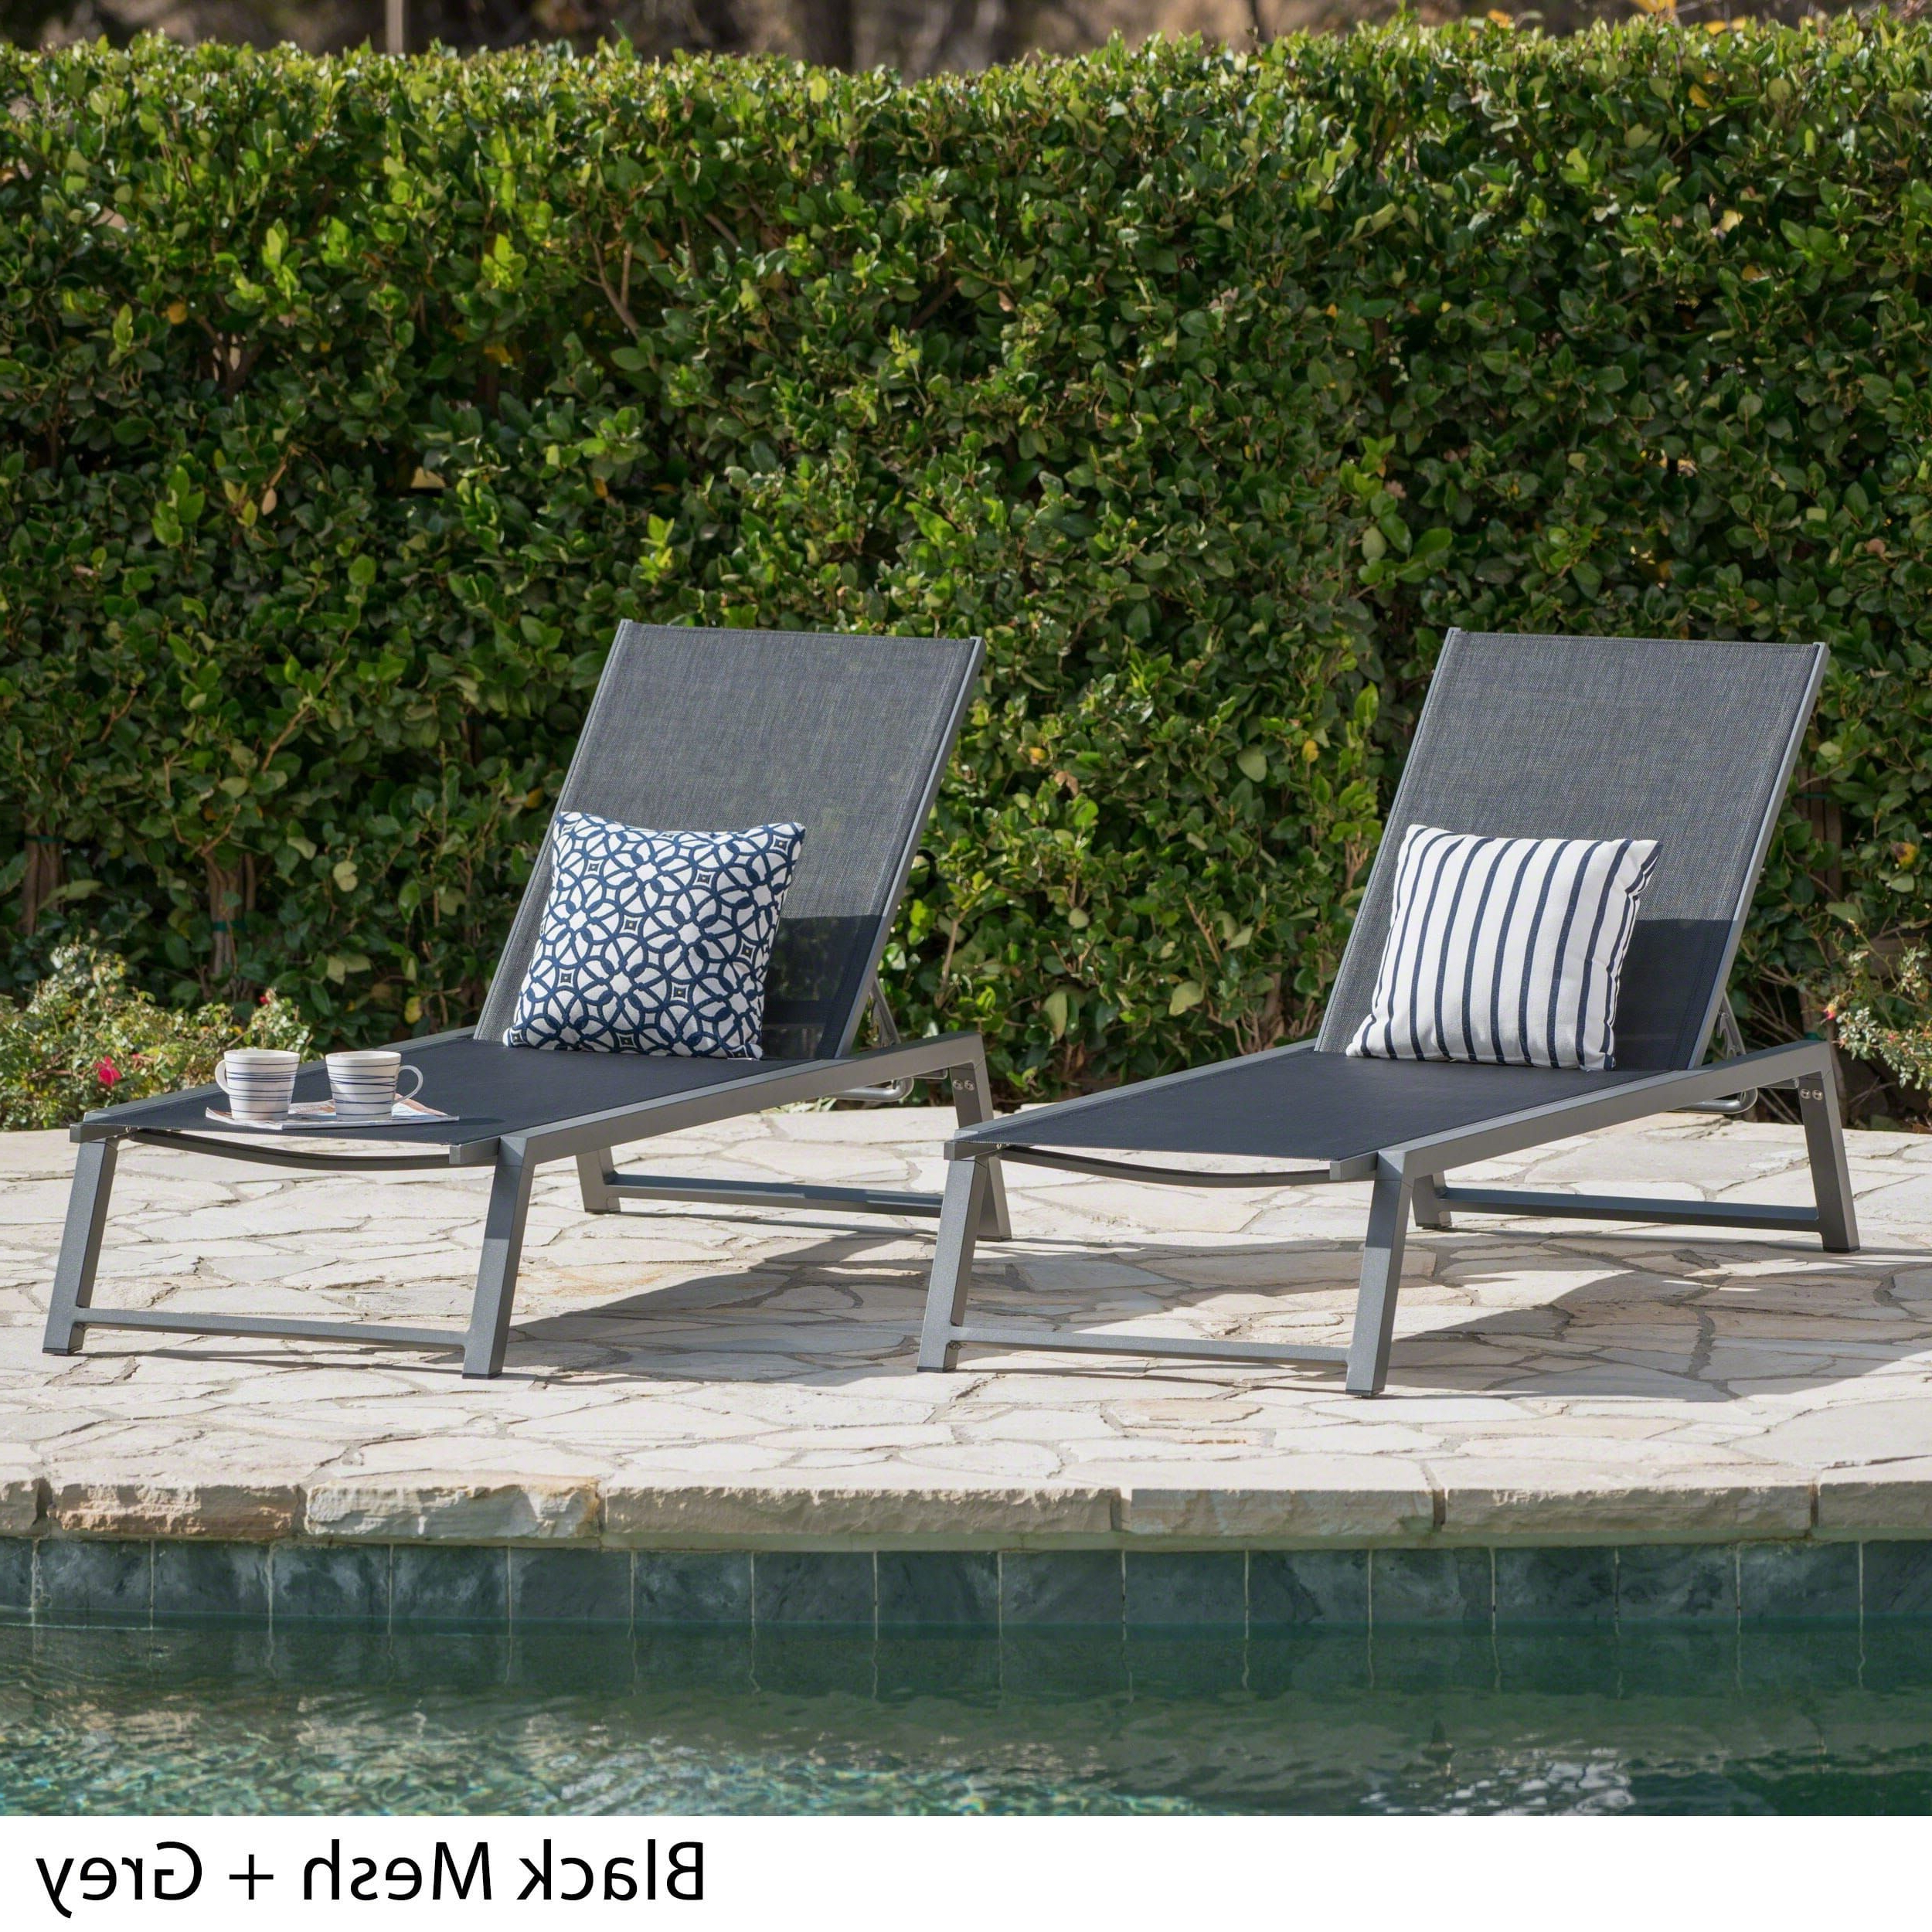 Myers Outdoor Aluminum Mesh Chaise Lounges Throughout Best And Newest Myers Outdoor Aluminum Mesh Chaise Lounge (Set Of 2) (View 3 of 25)